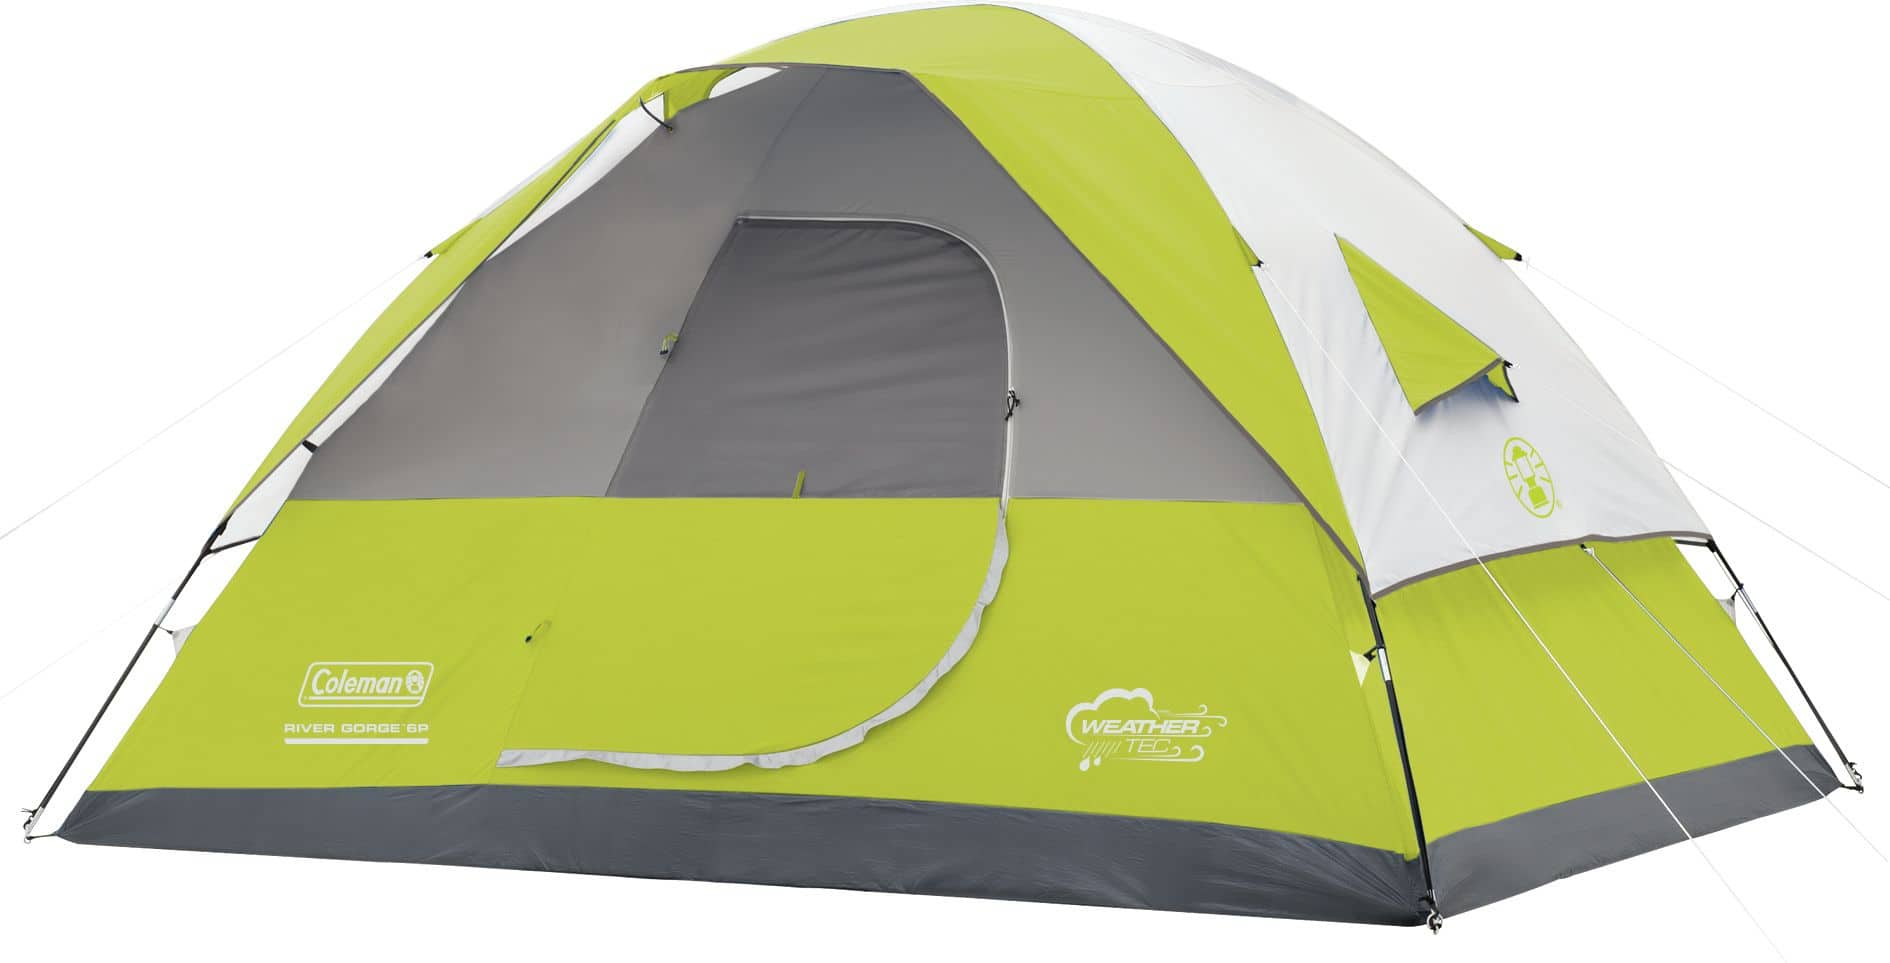 Coleman River Gorge 6 Person Dome Tent ( 11 * 9 ) for $63.99  sc 1 st  Slickdeals & Coleman River Gorge 6 Person Dome Tent ( 11 * 9 ) for $63.99 ...